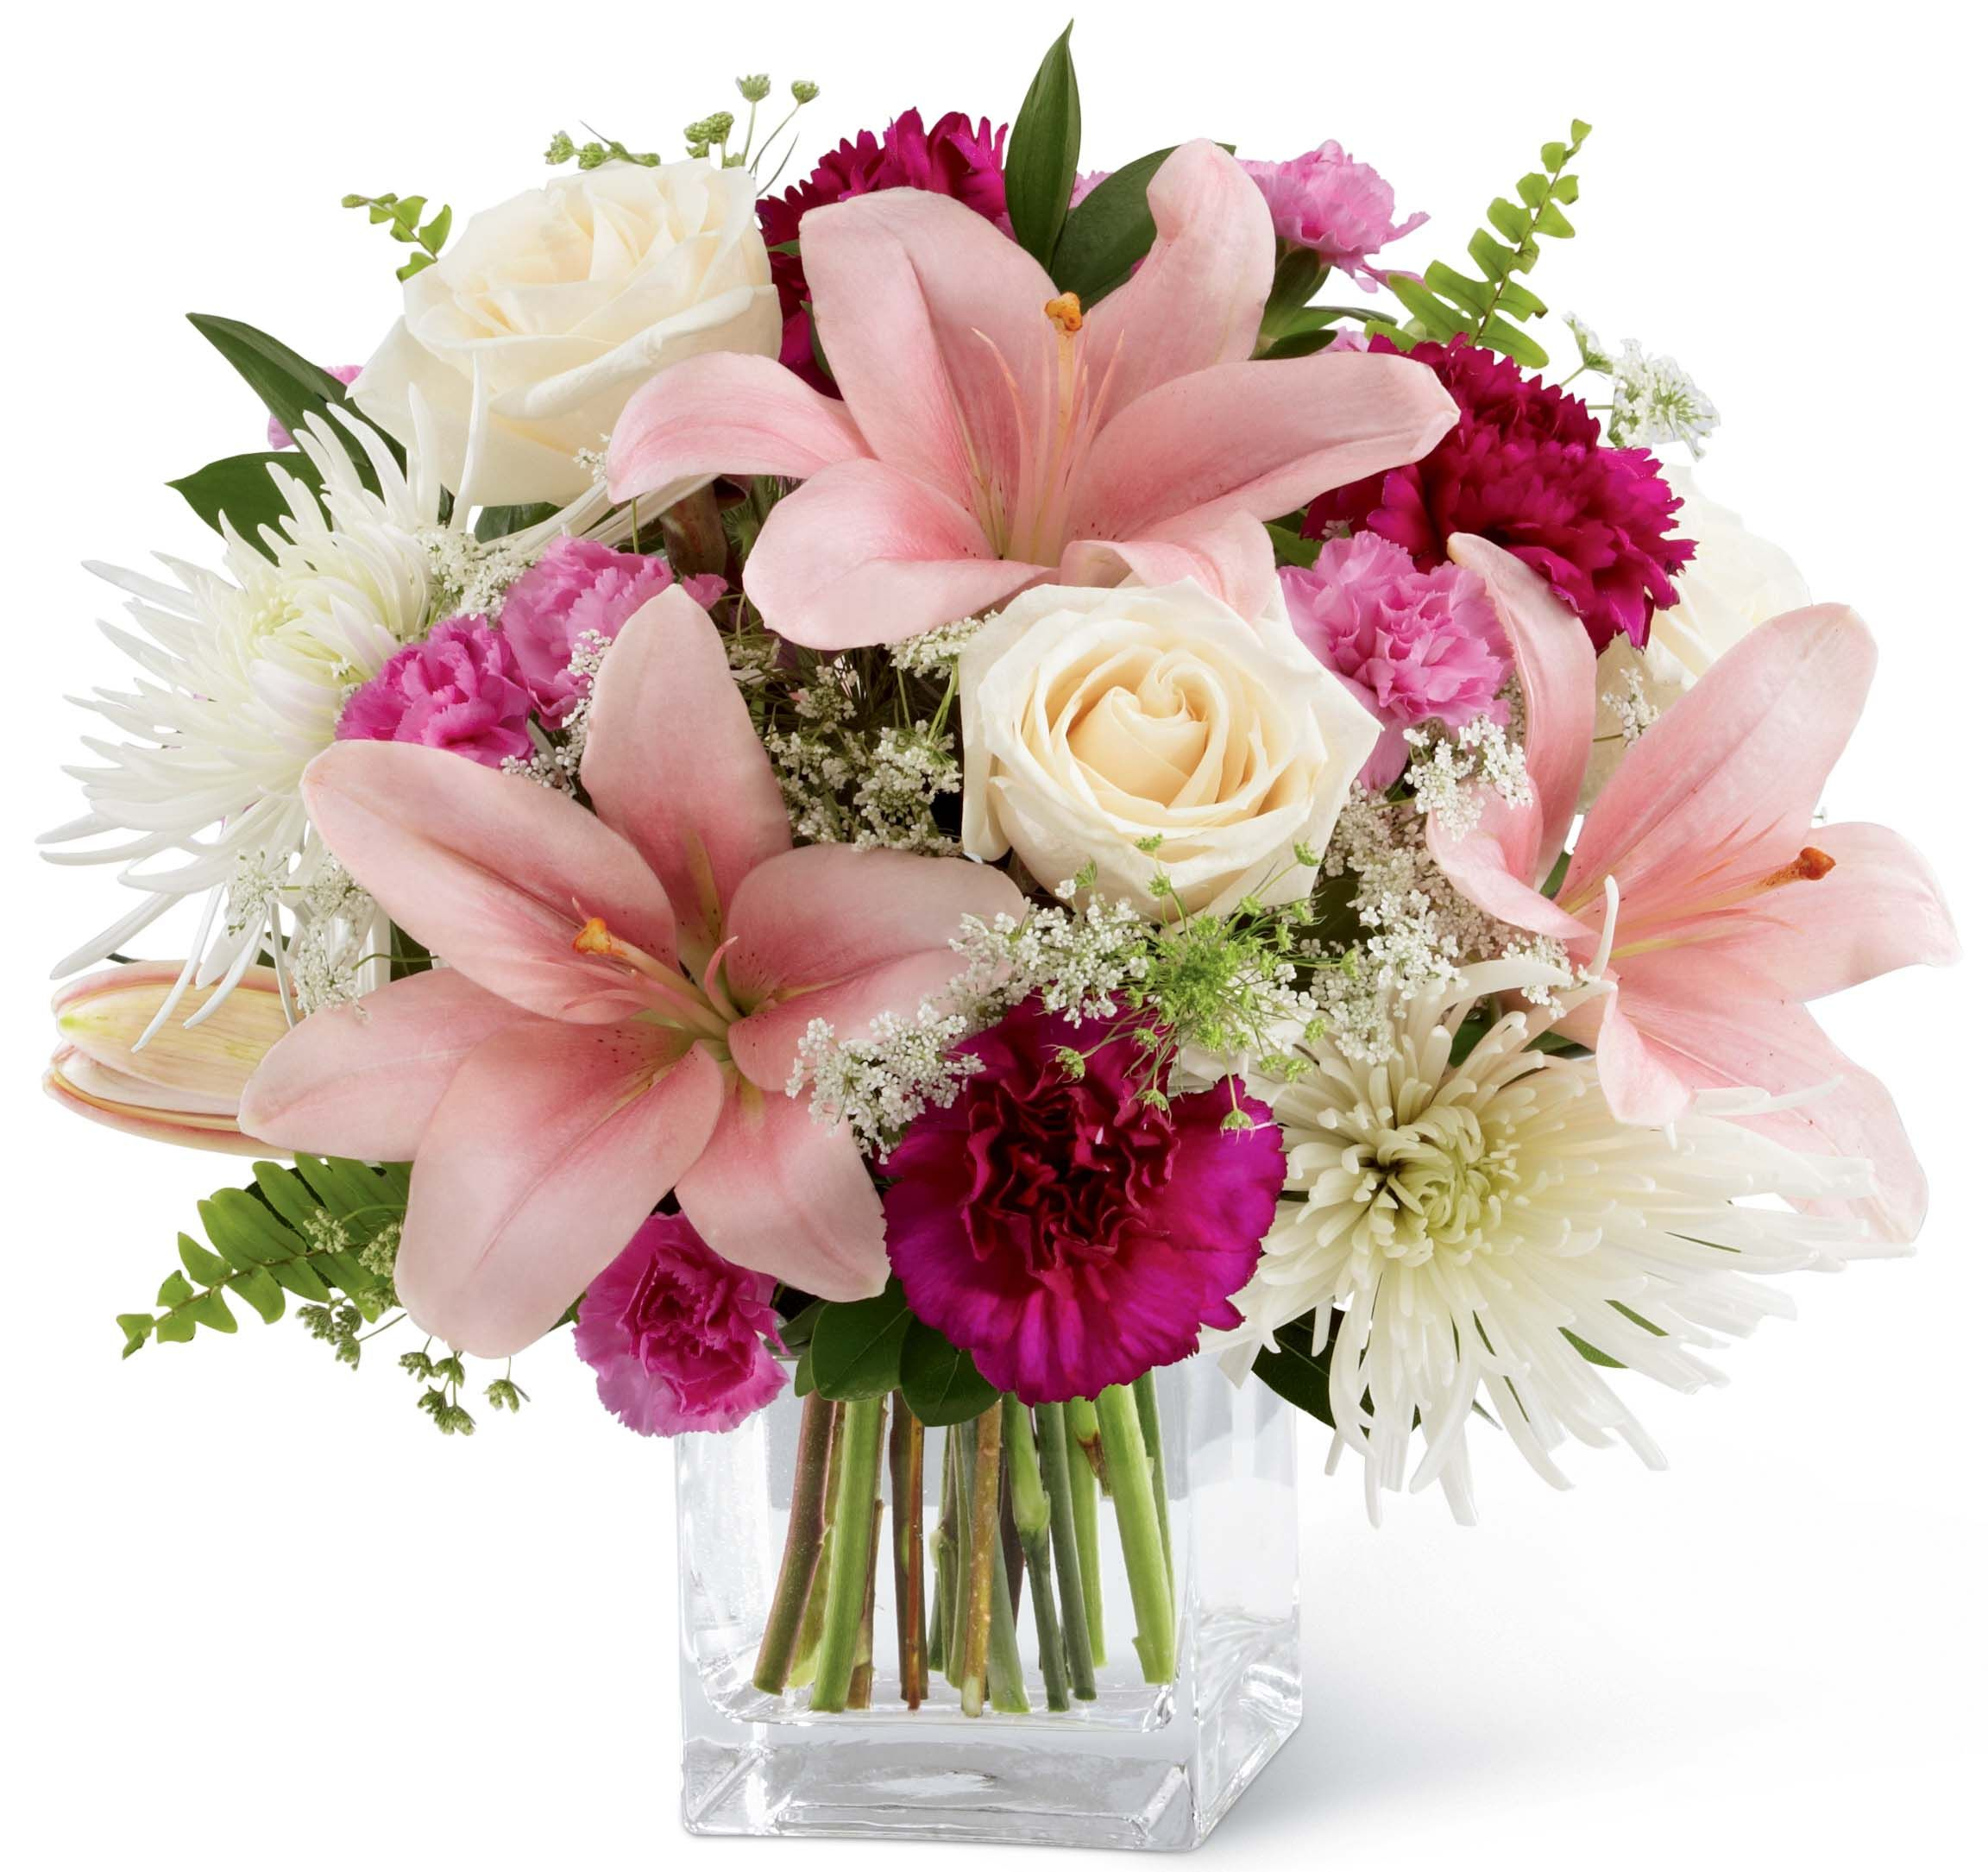 This elegant bouquet of white light pink and hot pink